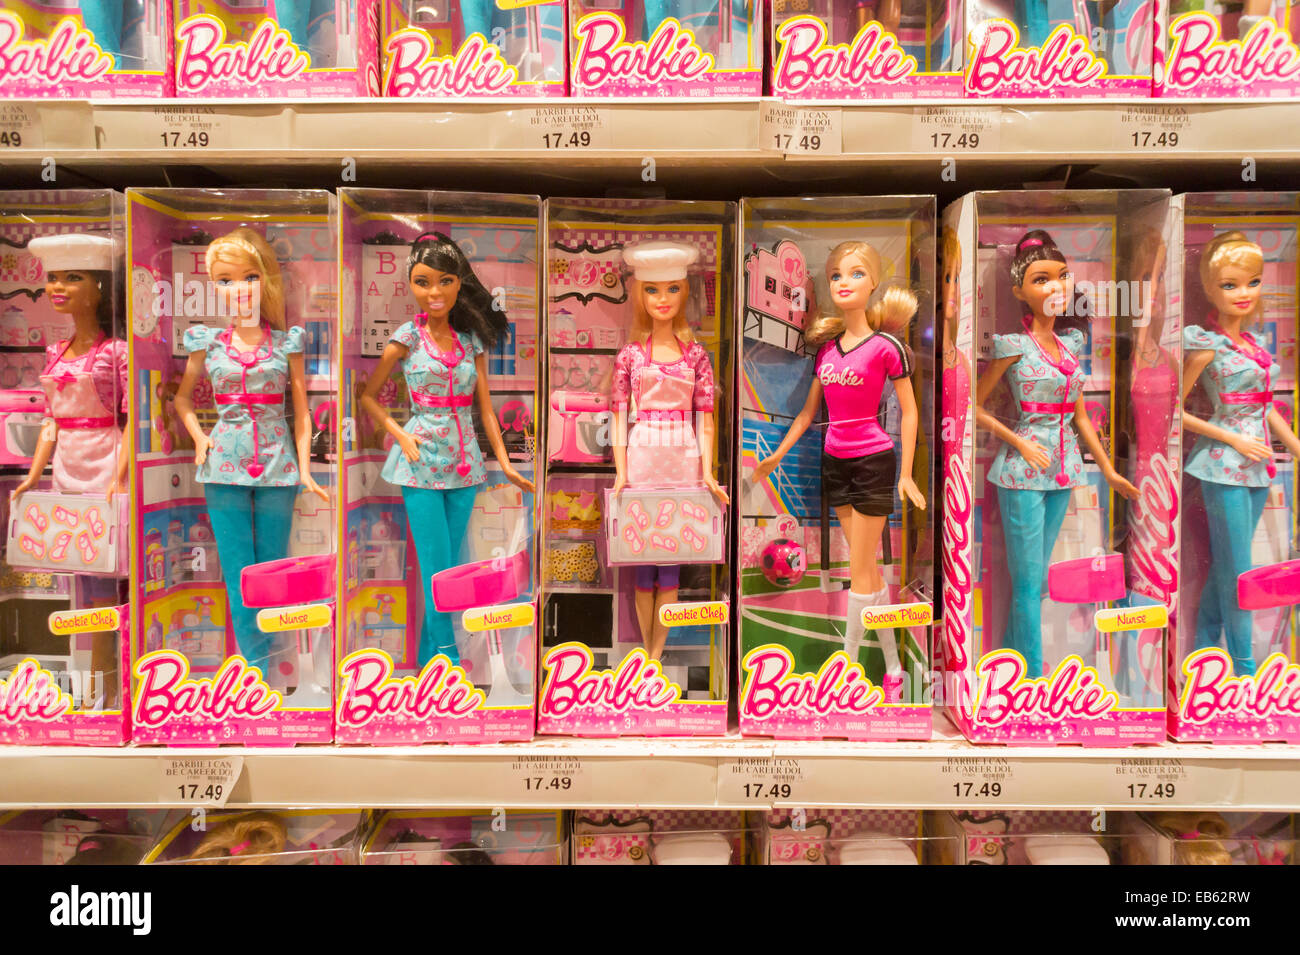 New Toys At Toys R Us : The barbie display at toys r us in times square new